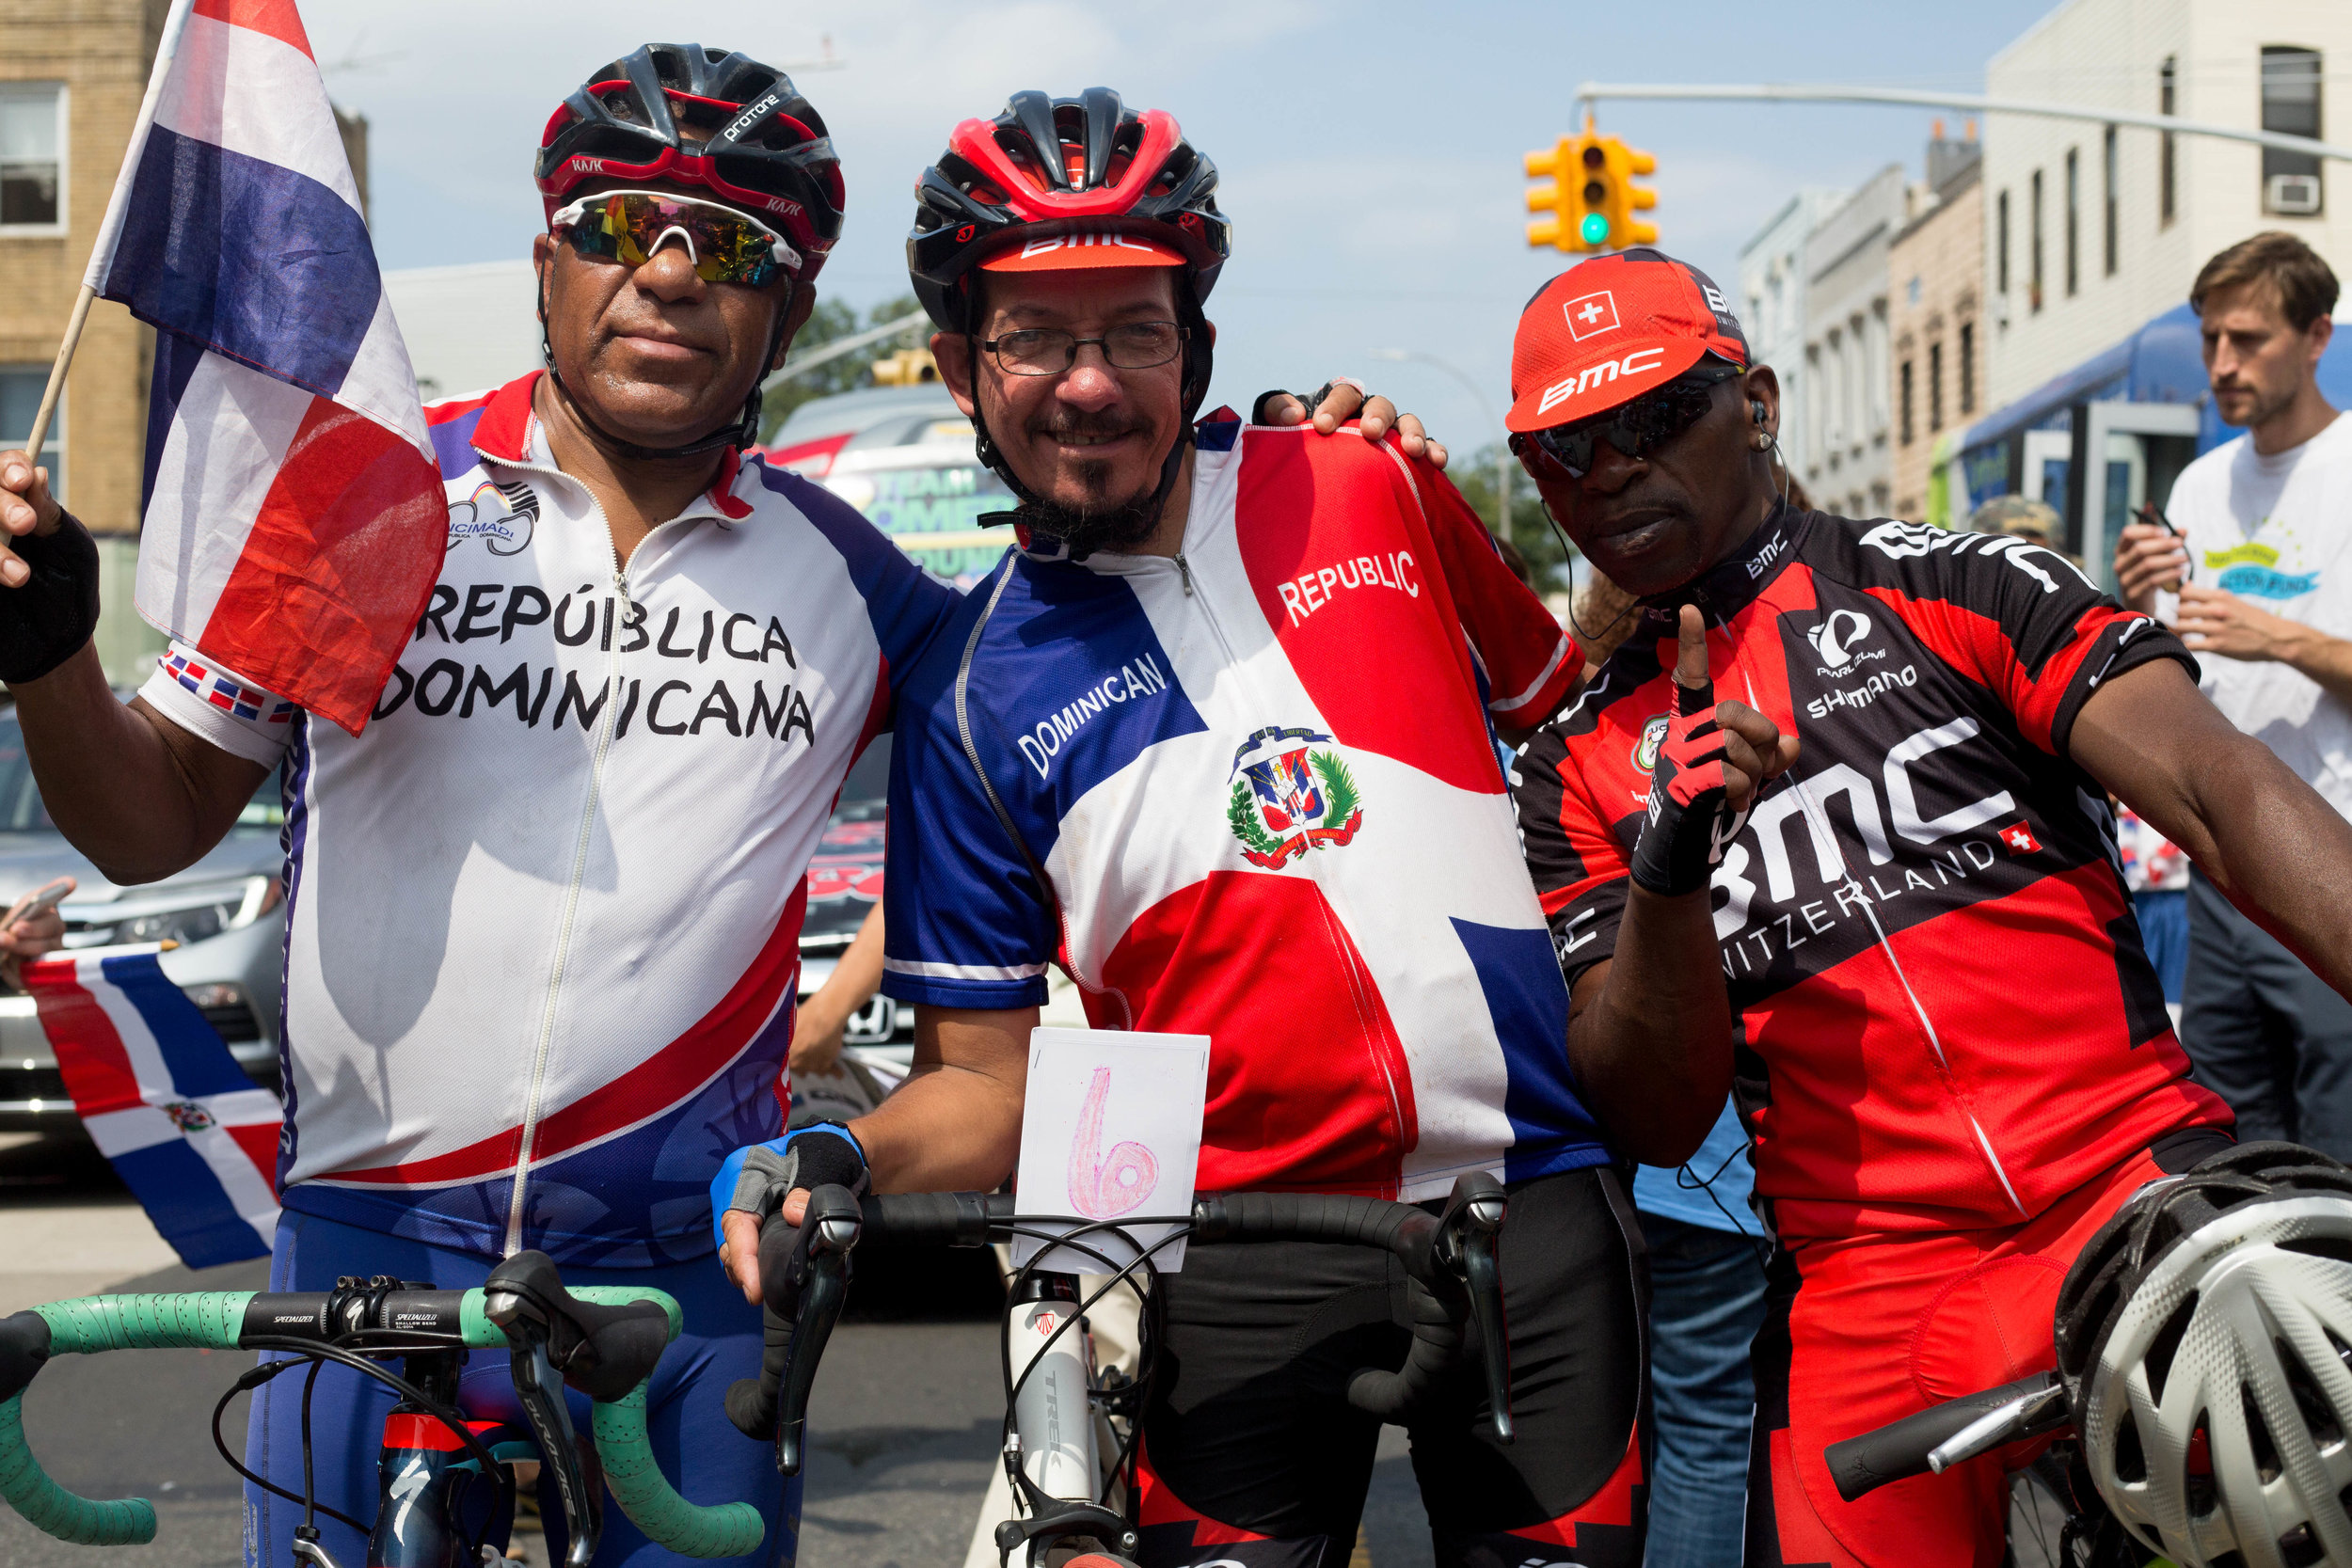 Dominican Road cycling team taking part in the 18th annual Williamsburg Dominican Parade, on Sunday, Aug 26, in New York. Photo: Wes Parnell